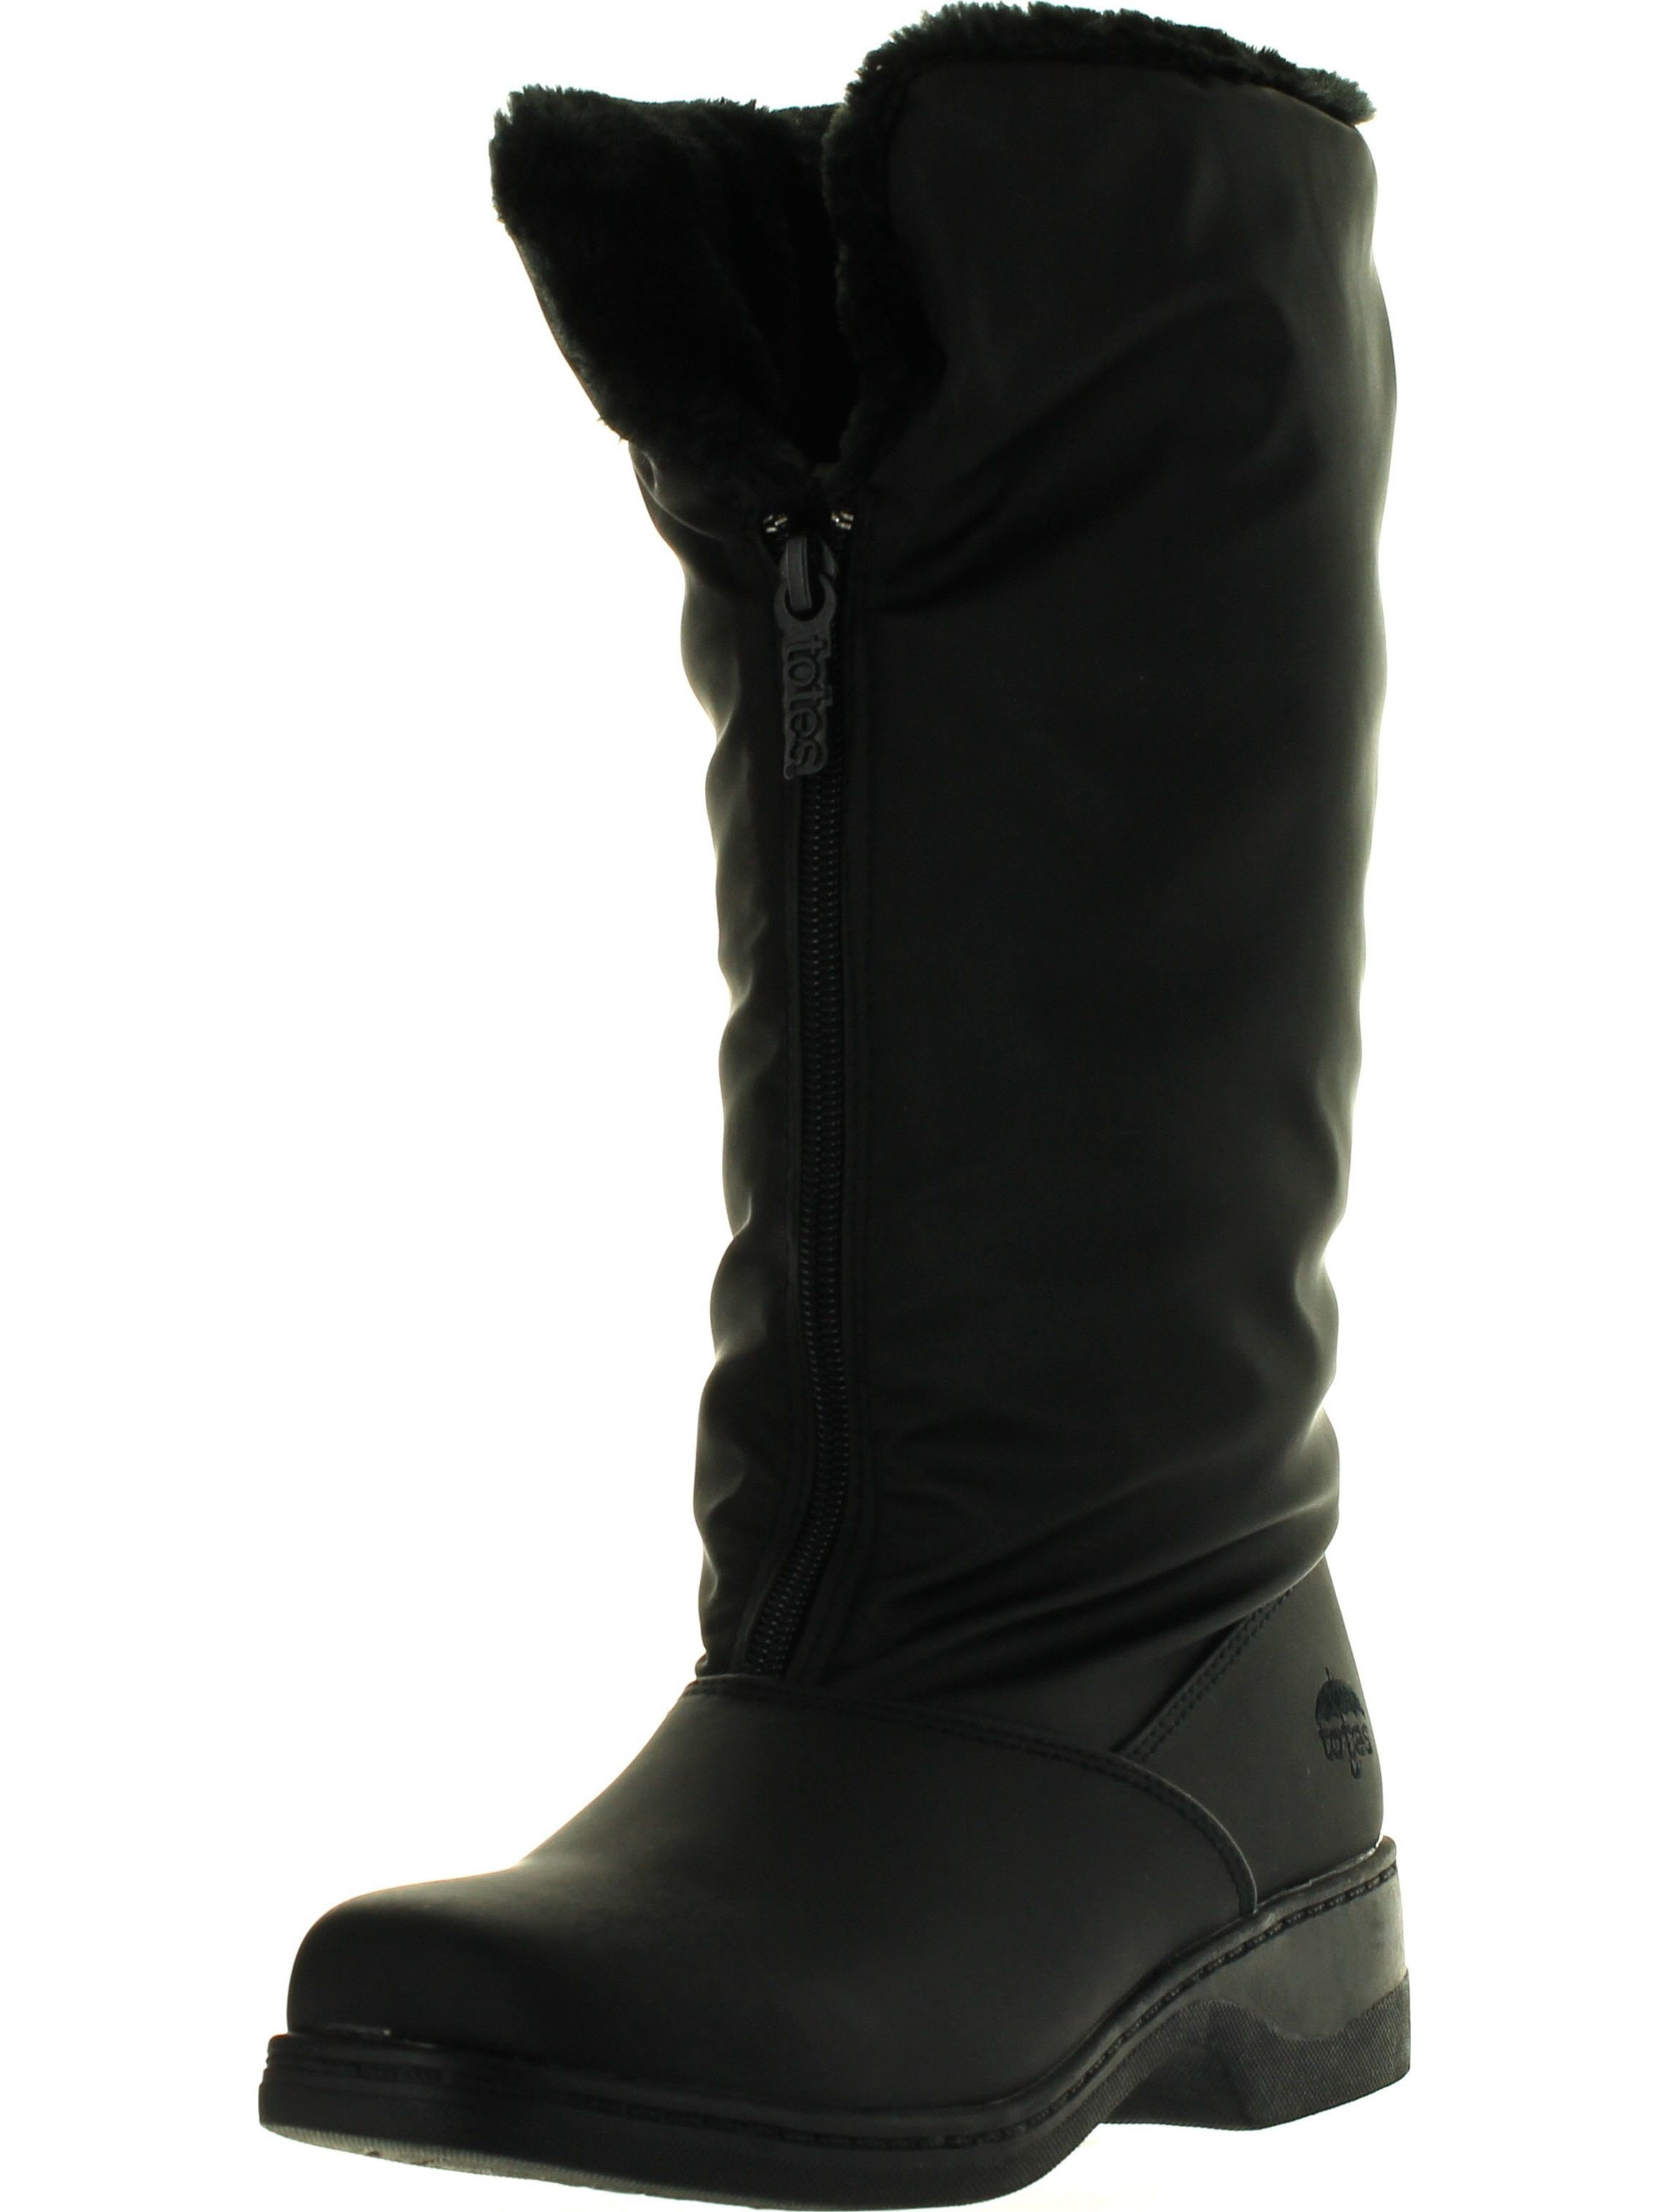 Totes Womens Cynthia Winter Waterproof Snow Boots by Totes